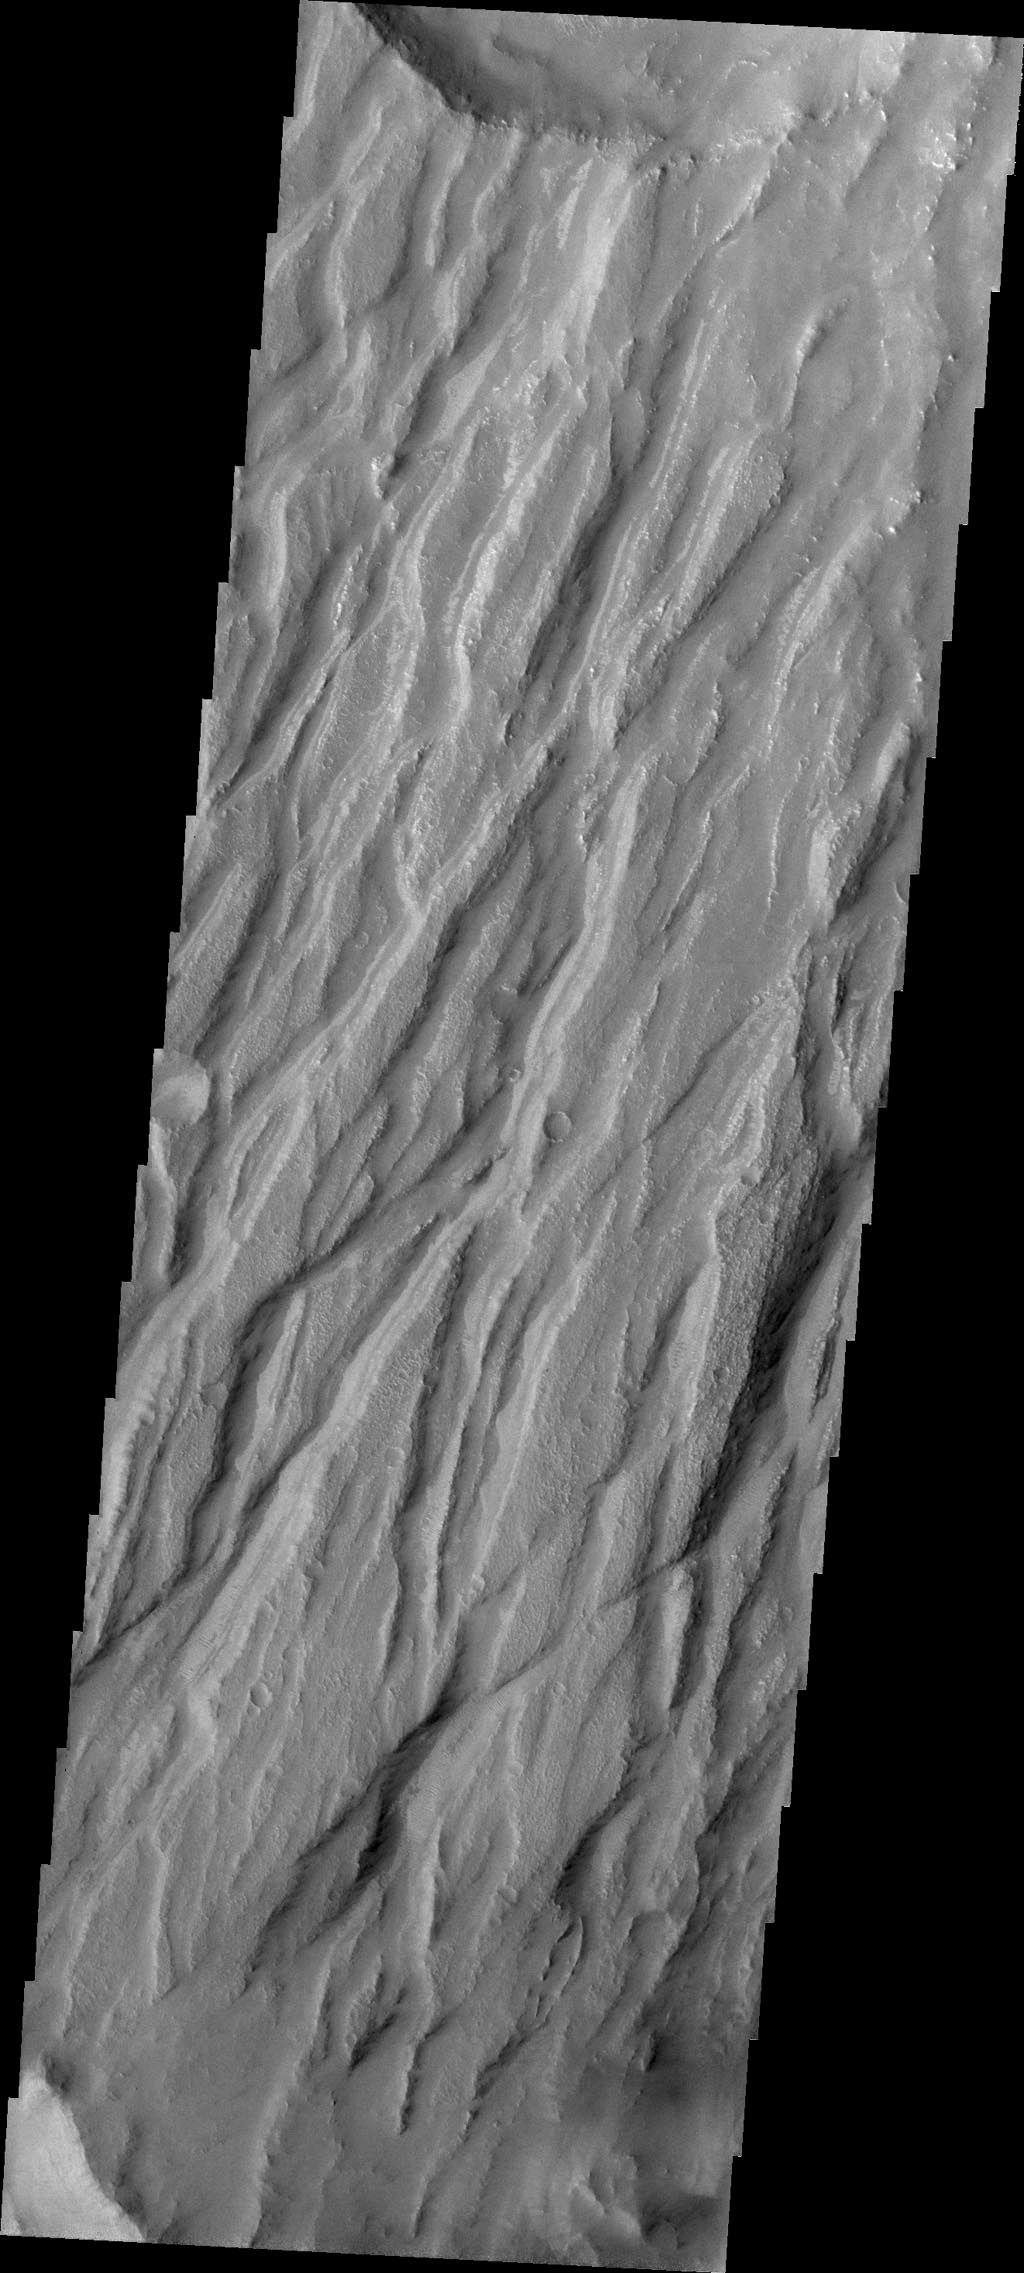 Claritas Fossae is the dissected and fractured highland between the volcanic plains of Daedalia and Solis Planums. This image is from NASA's 2001 Mars Odyssey spacecraft.